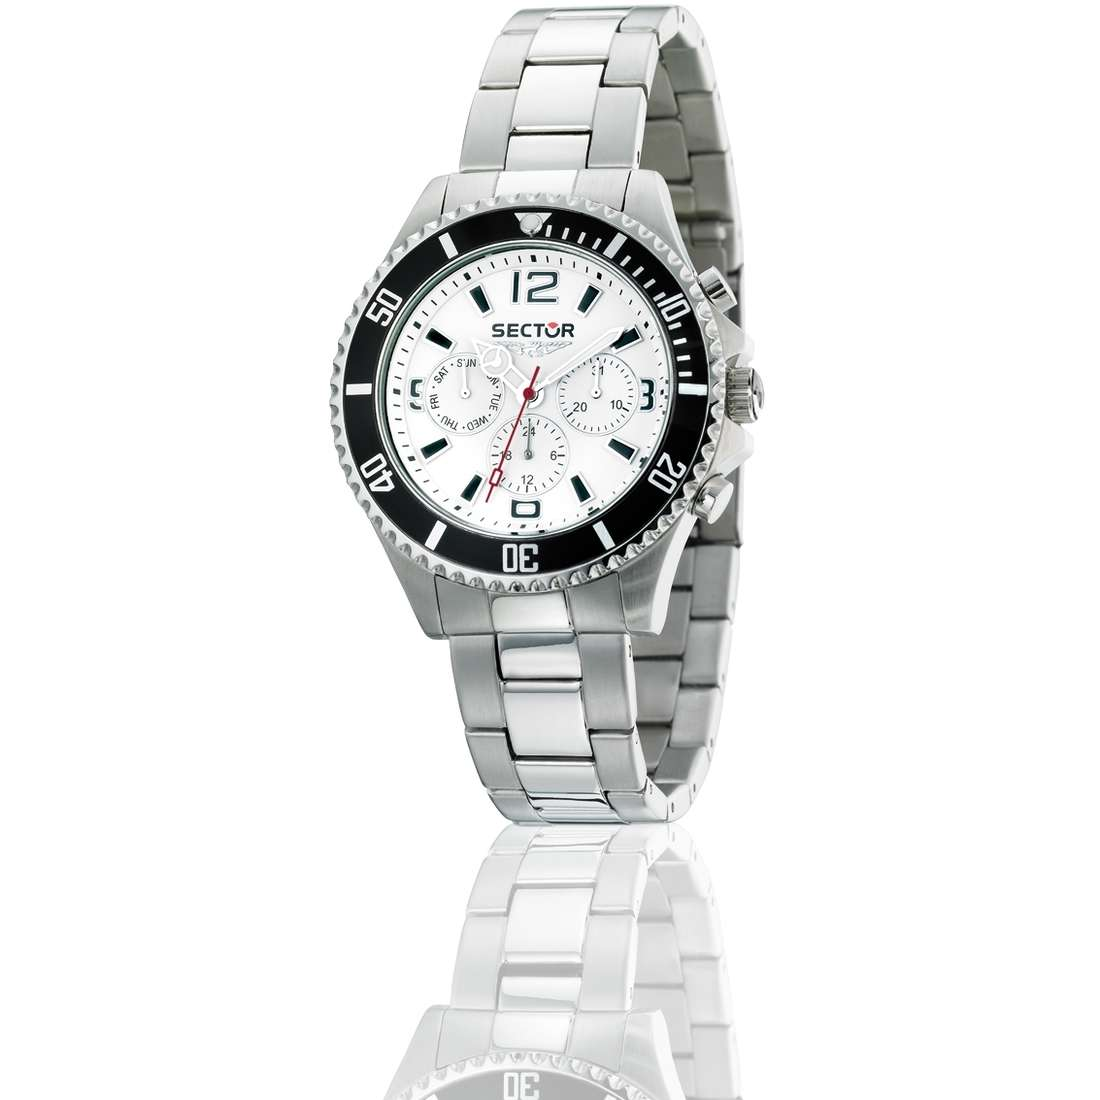 montre multifonction homme Sector Marine230 R3273661045